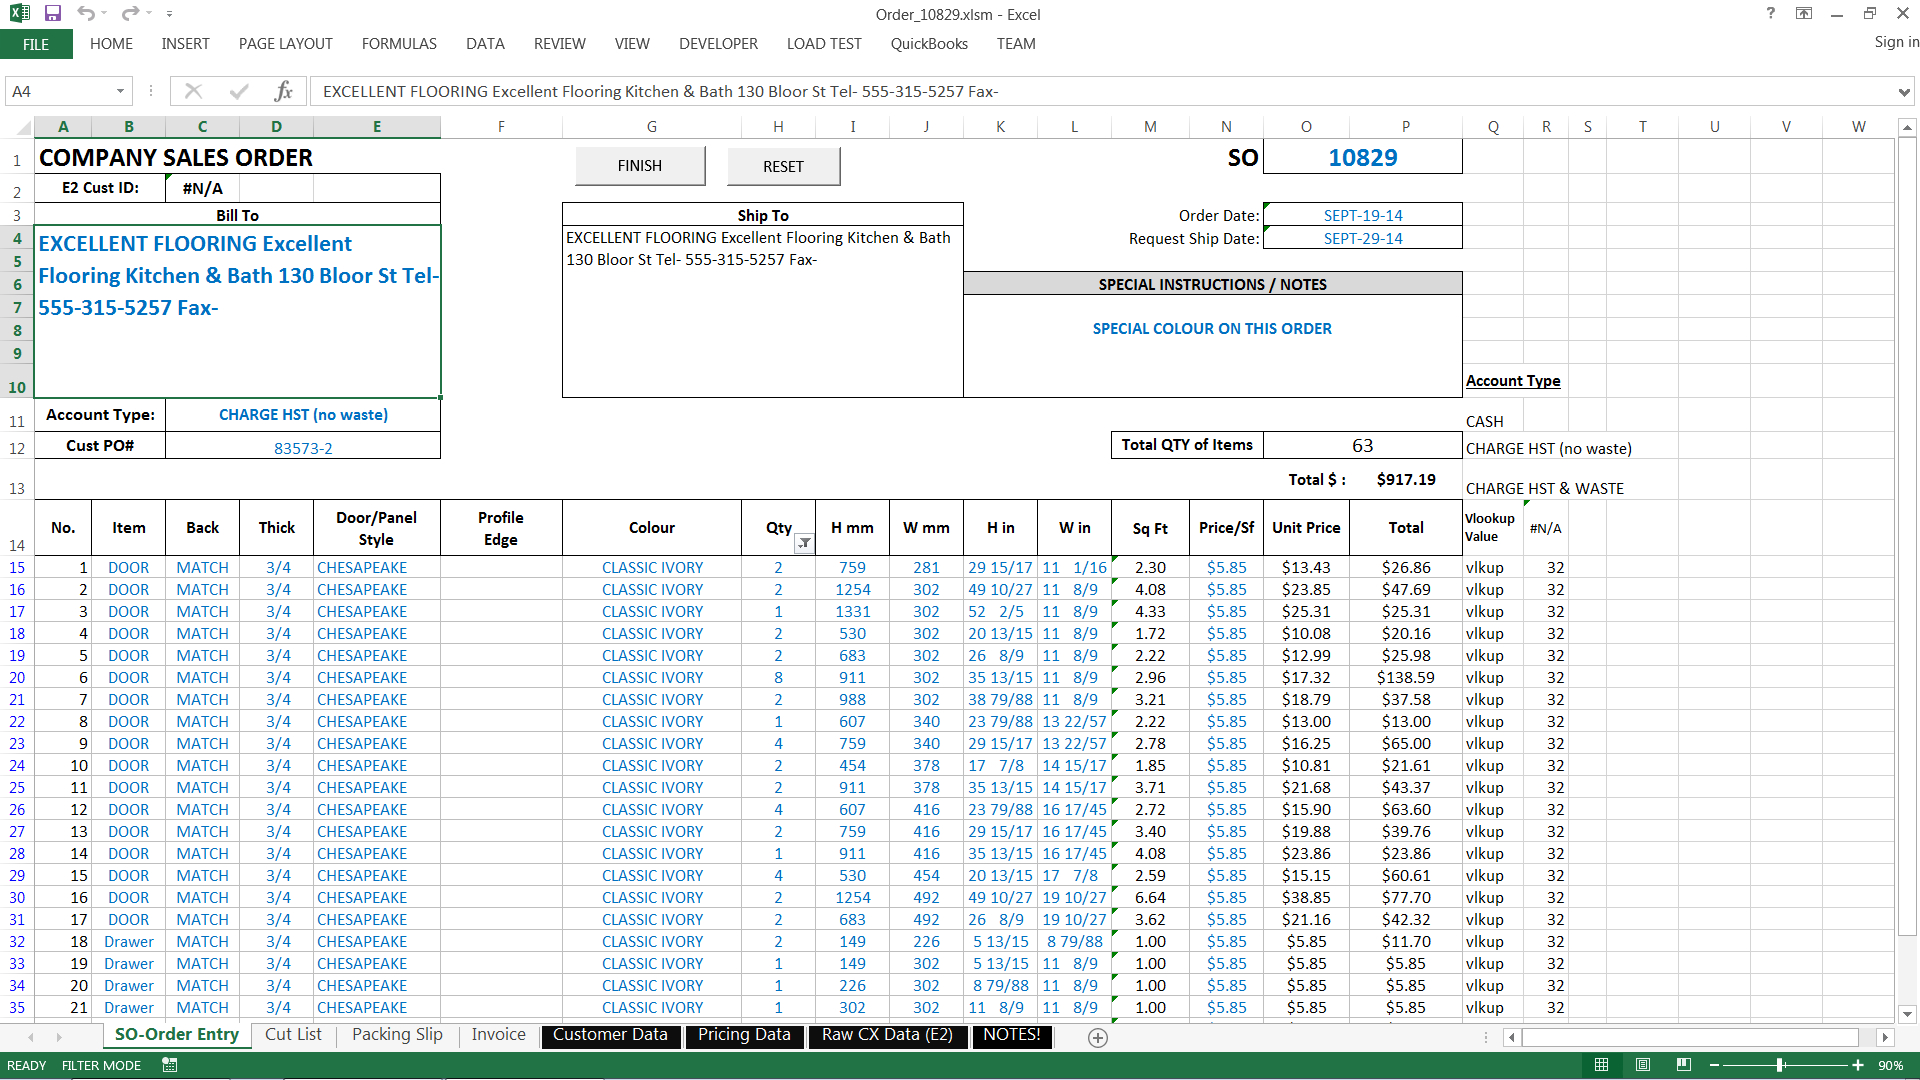 Spreadsheet Applications Other Than Excel For Custom Excel Spreadsheet Applications